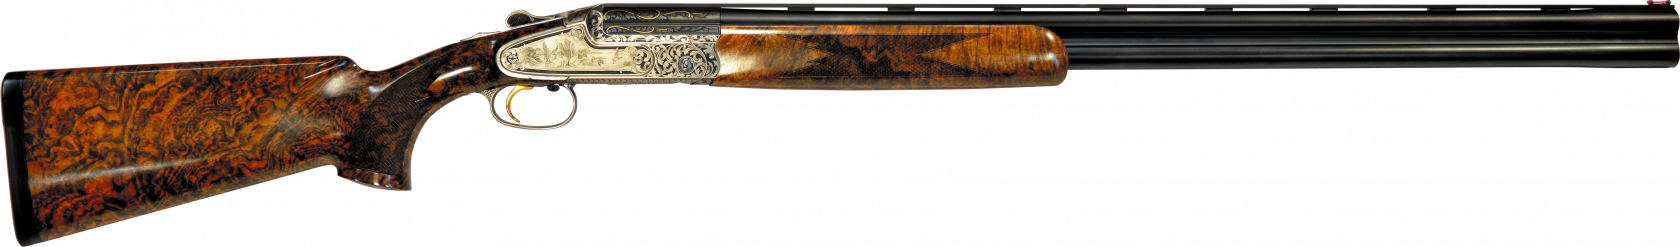 Blaser+F3+Competition+Imperial+12-76-810+1+_2.png